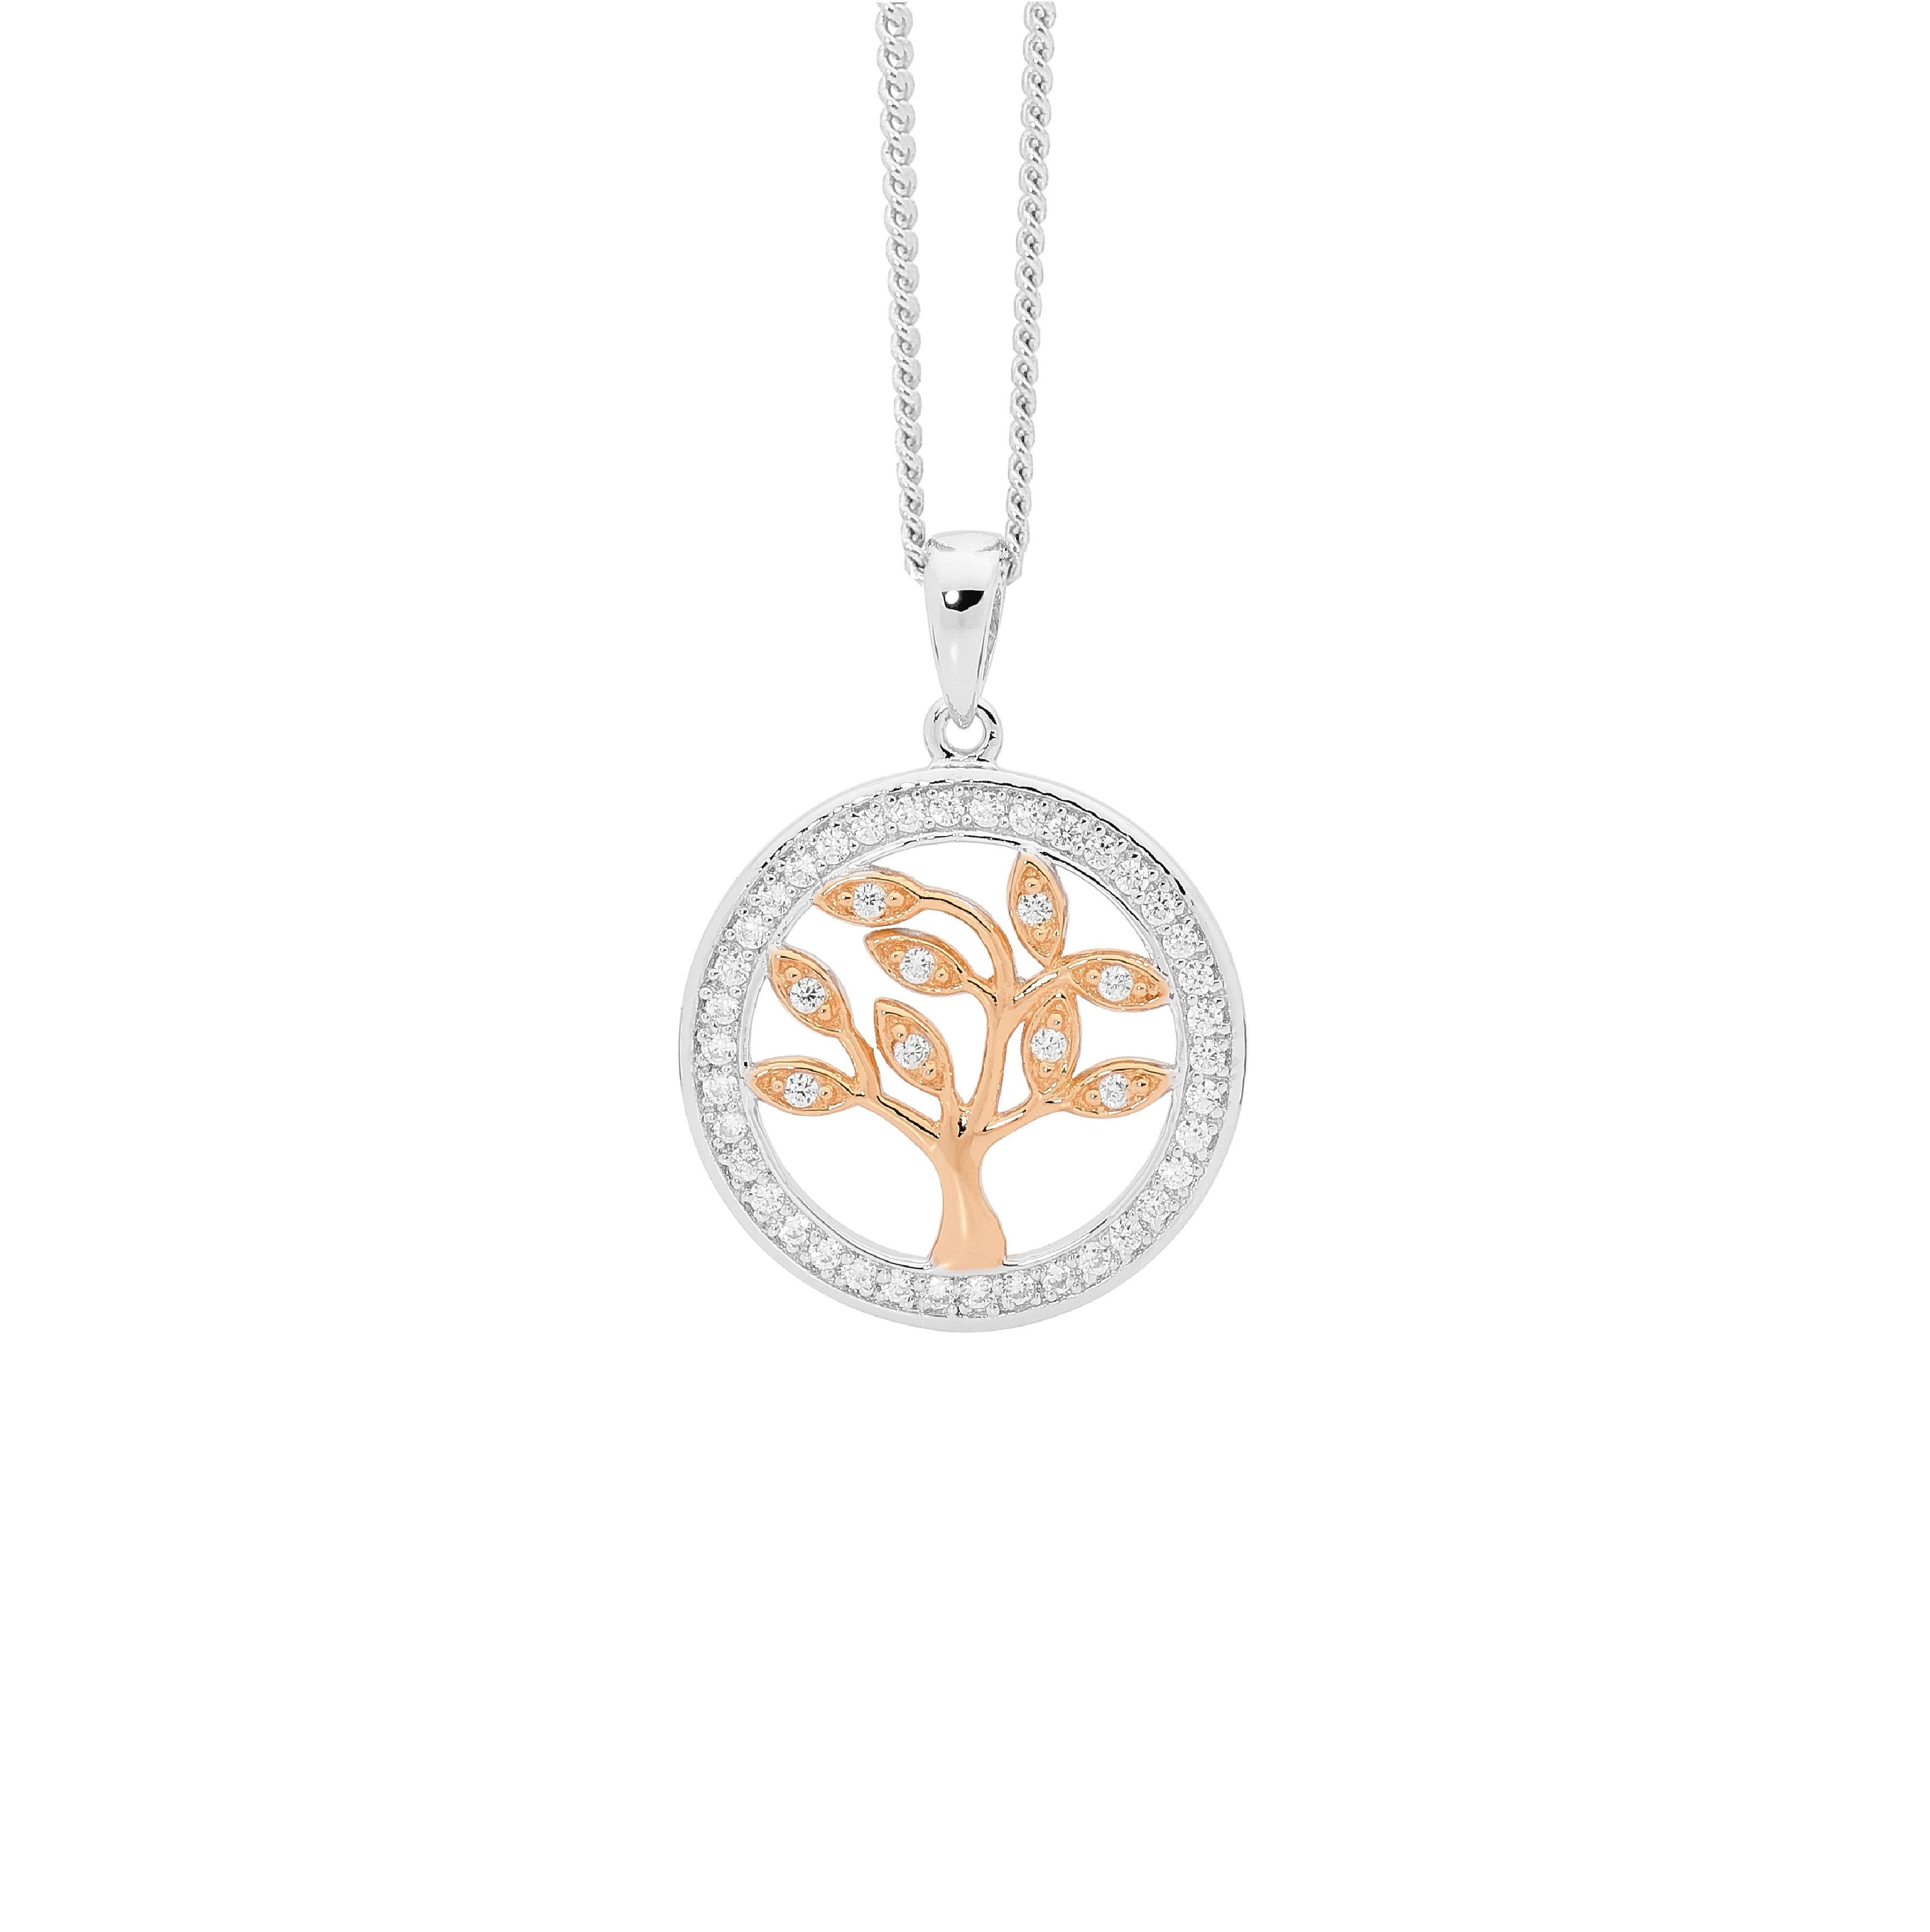 S/S WH CZ SML TREE OF LIFE PENDANT W/ CZ SURROUND, RG PLATING